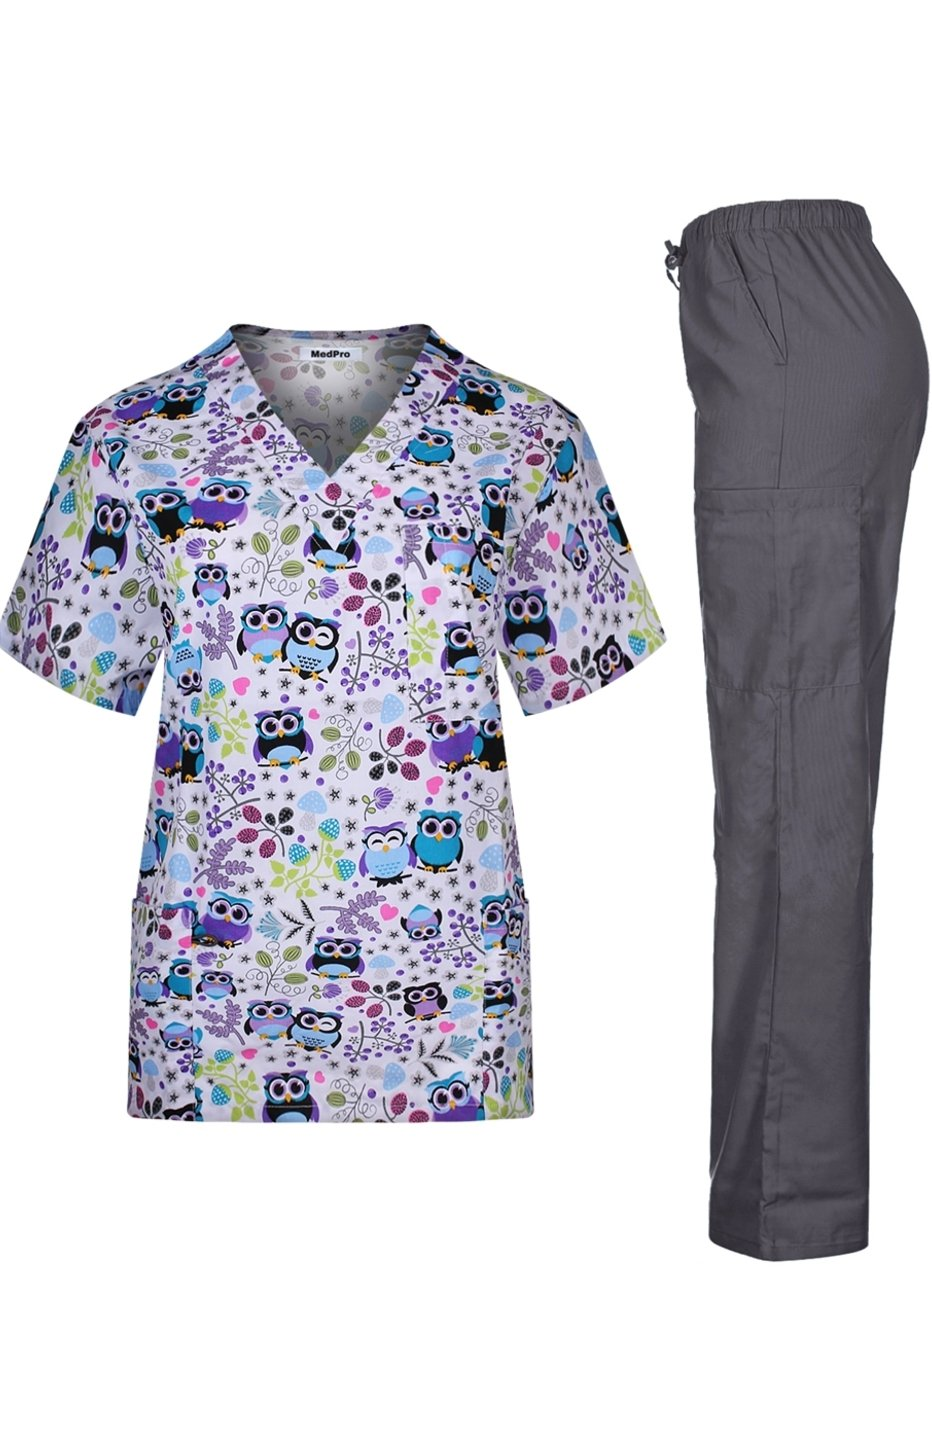 MedPro Women's Medical Scrub Set with Printed V-Neck Top and Cargo Pants   White Purple L